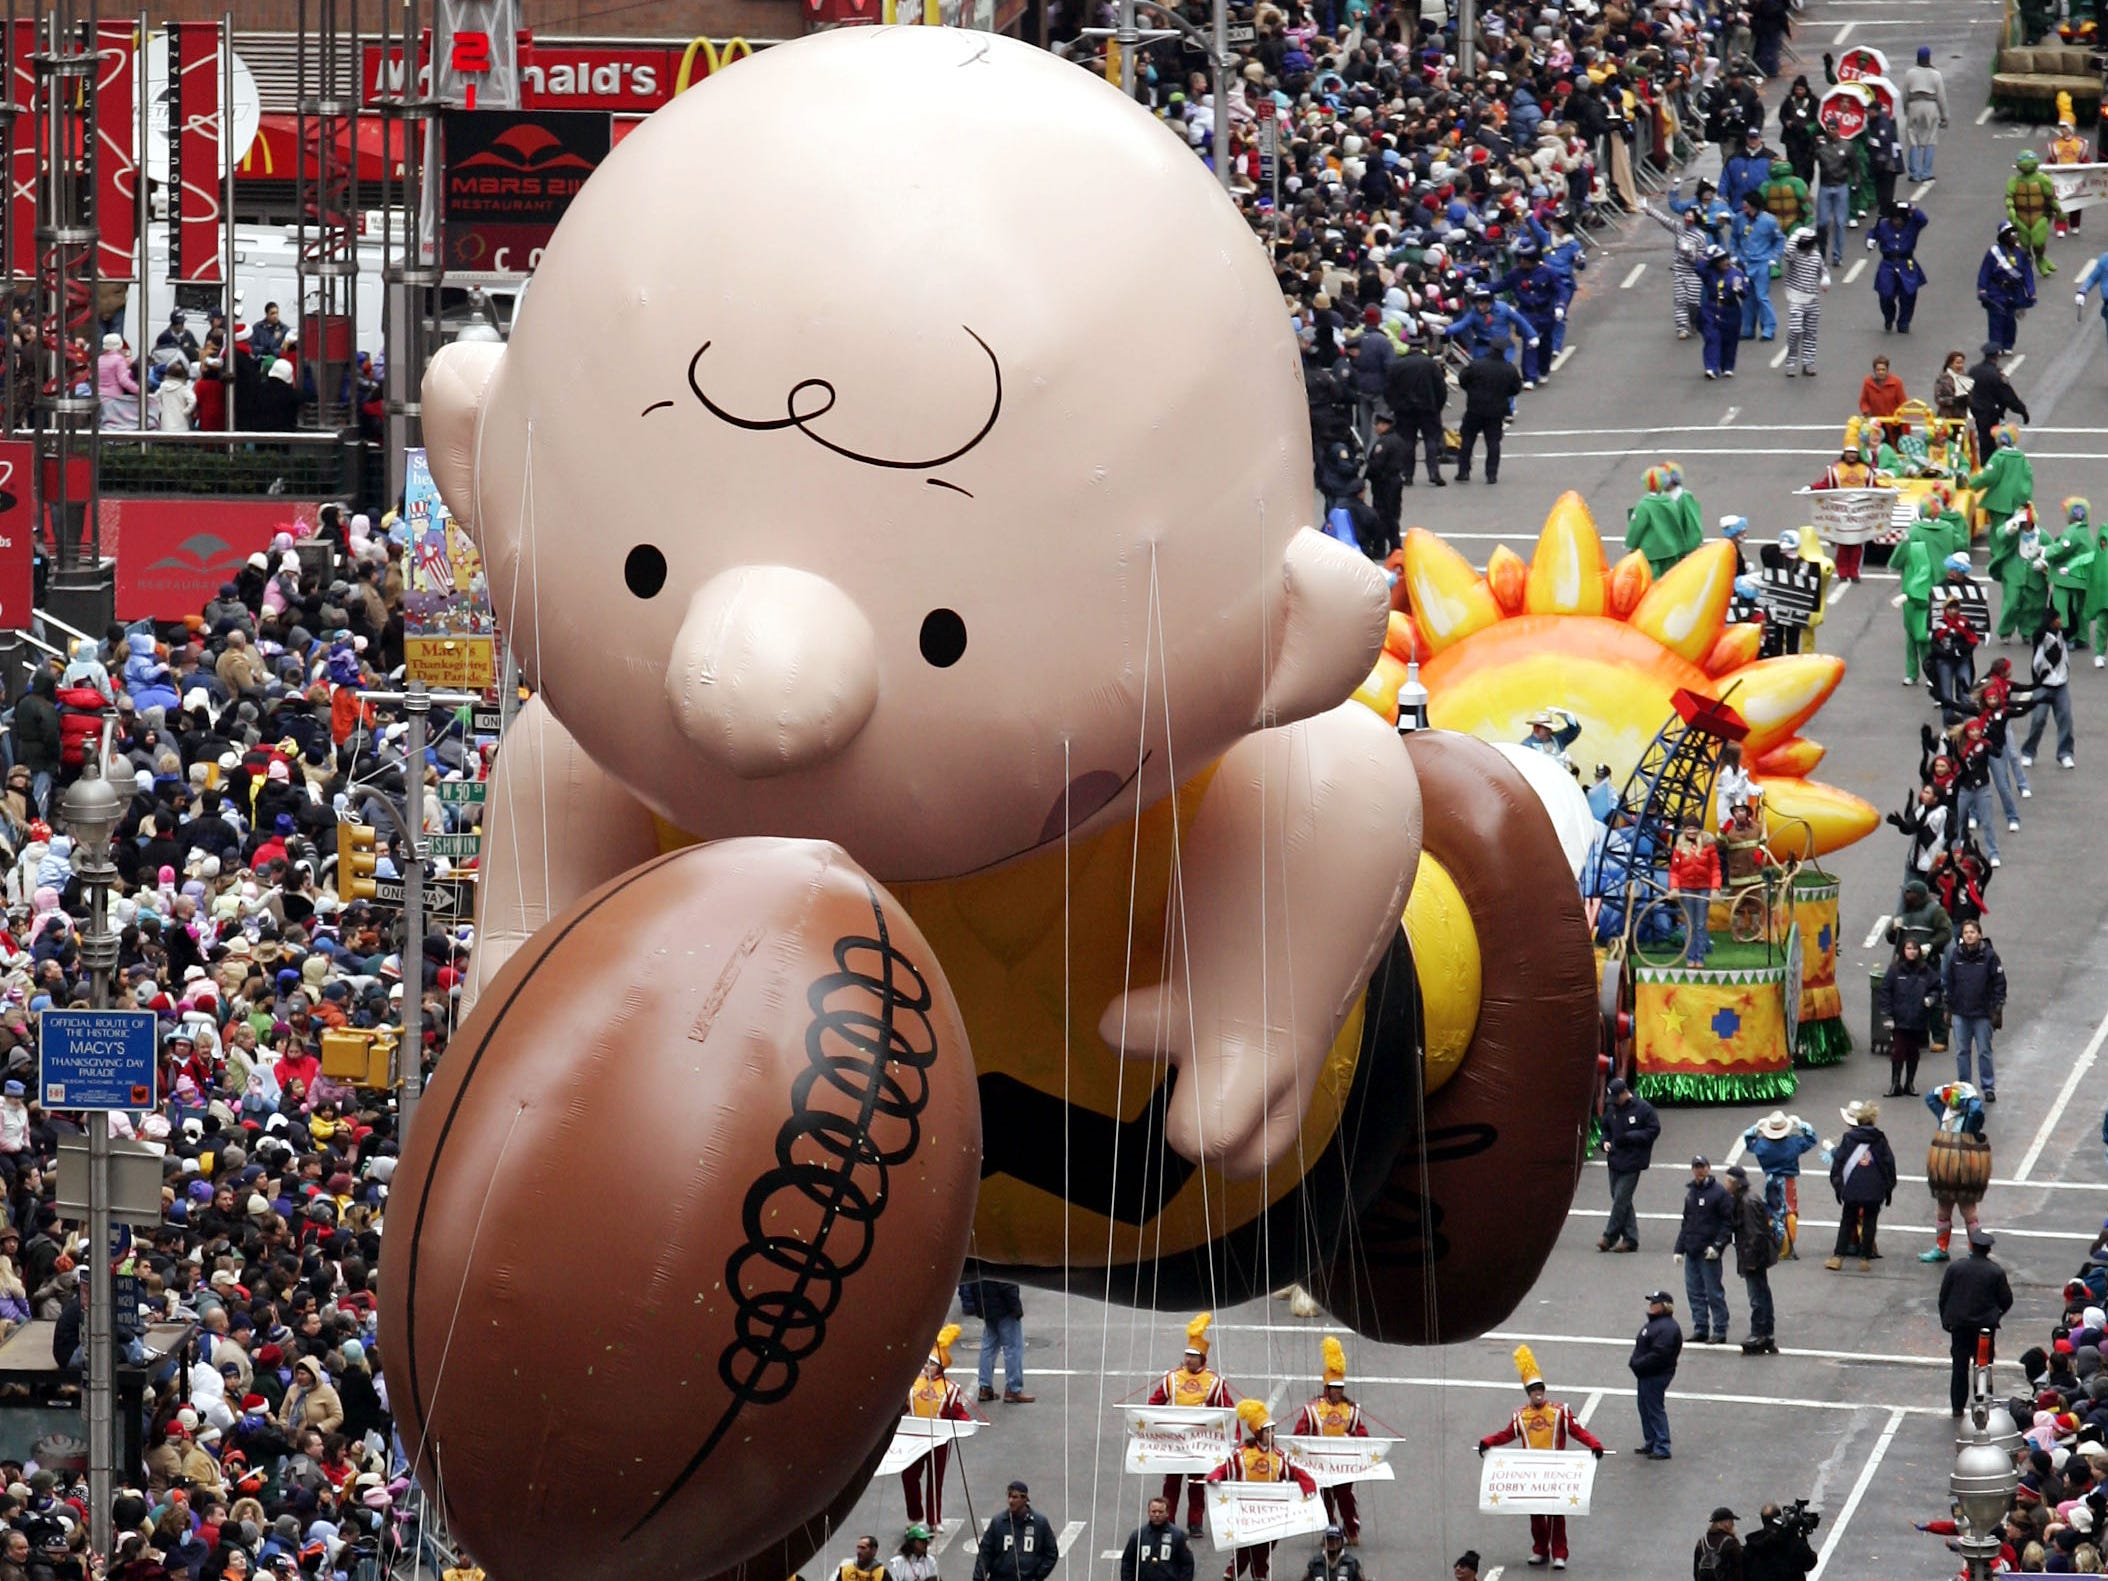 FILE - This Nov. 24, 2005 file photo shows a balloon of Peanuts character Charlie Brown chasing a football down Broadway during the Macy's Thanksgiving Day parade in New York.   (AP Photo/Jeff Christensen, file)